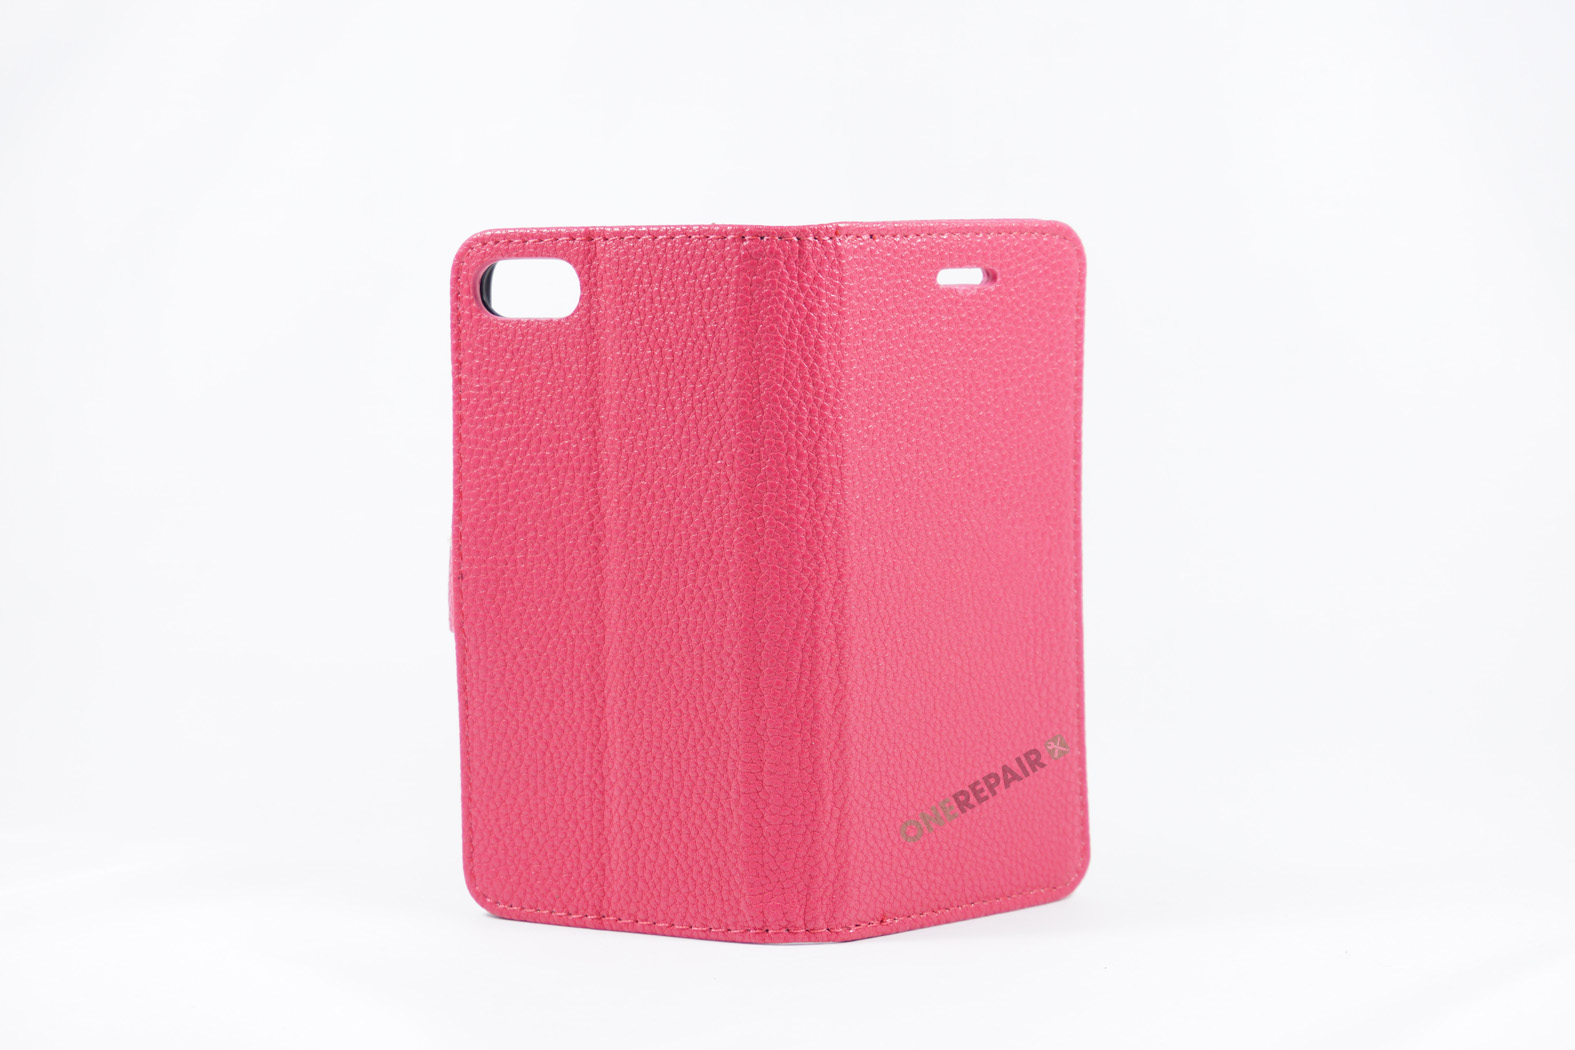 350829_iPhone_7_8_Flipcover_Bubble_Cover_Lyseroed_Pink_OneRepair_WM_00003